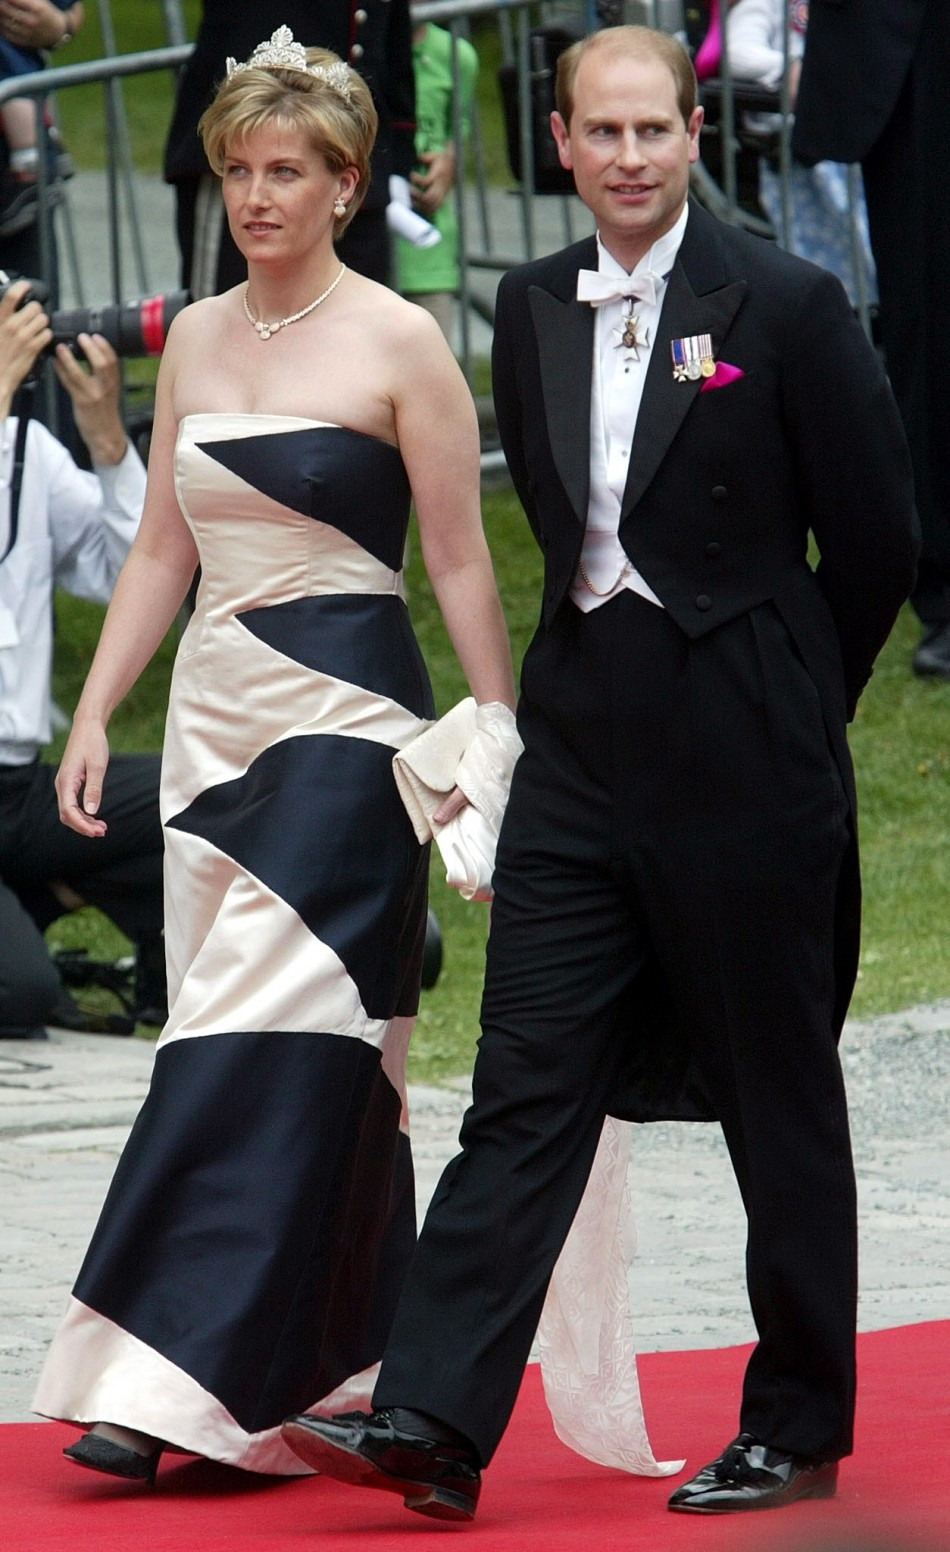 Prince Edward and his wife Sophie, the Countess of Wessex